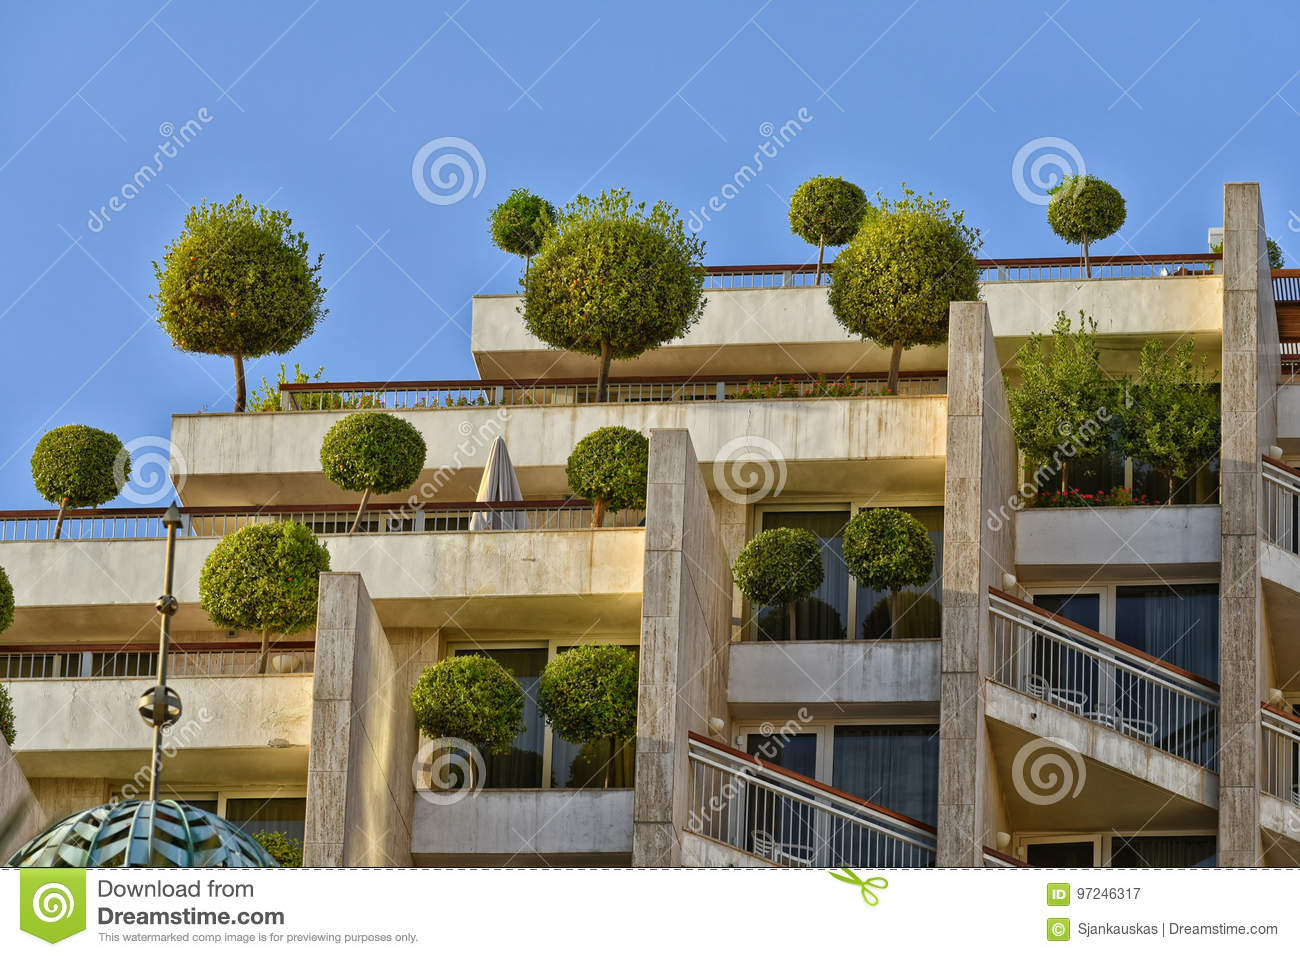 Eco building with trees